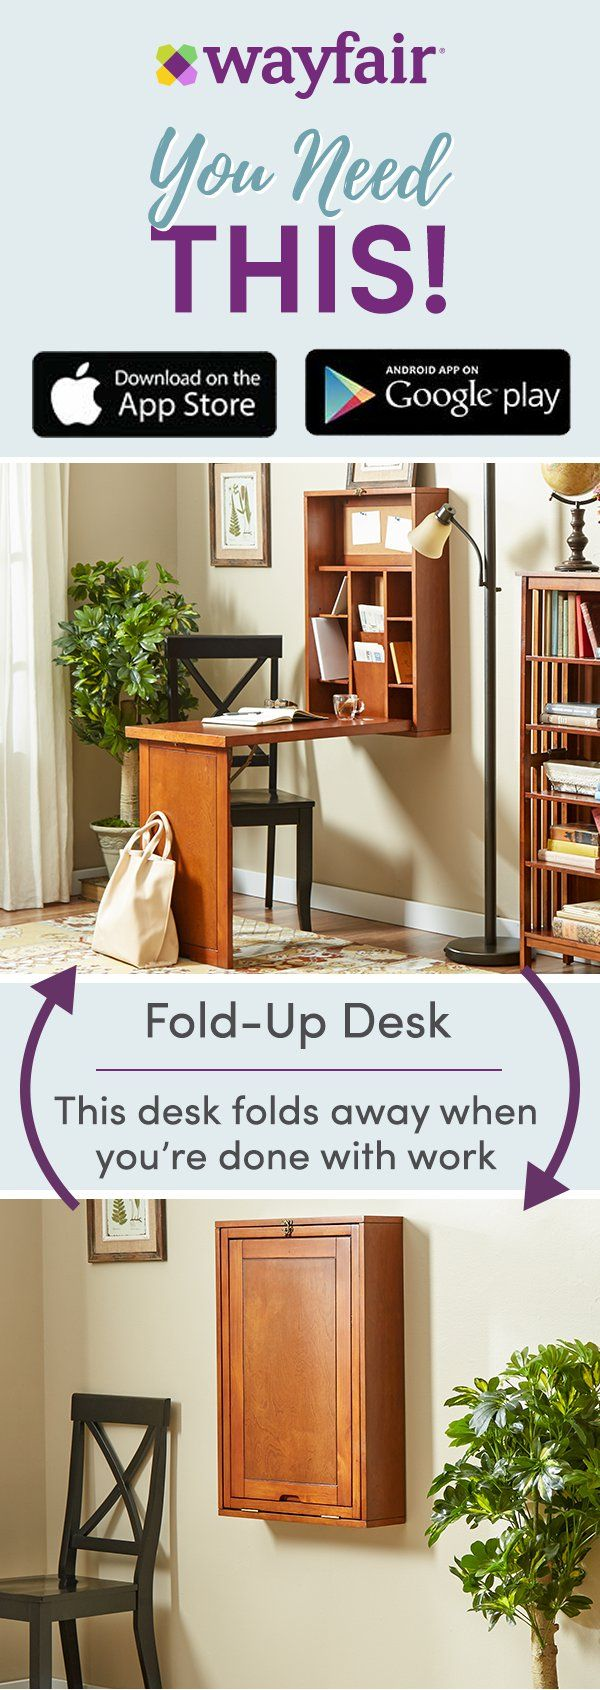 Download the Wayfair app to confidently shop on the go